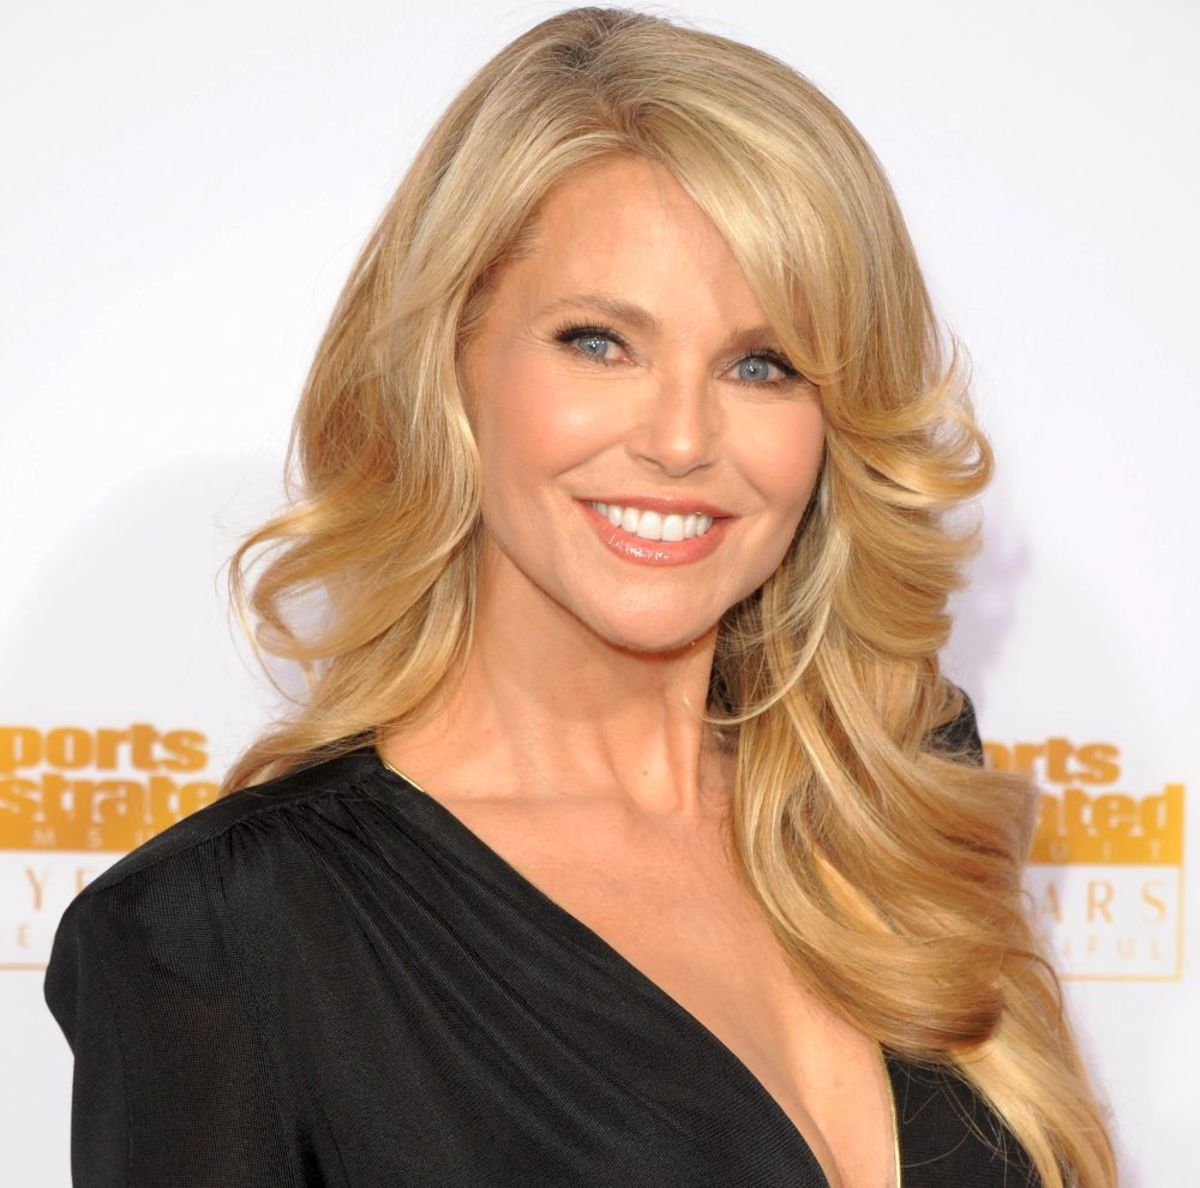 Model and actress Christie Brinkley